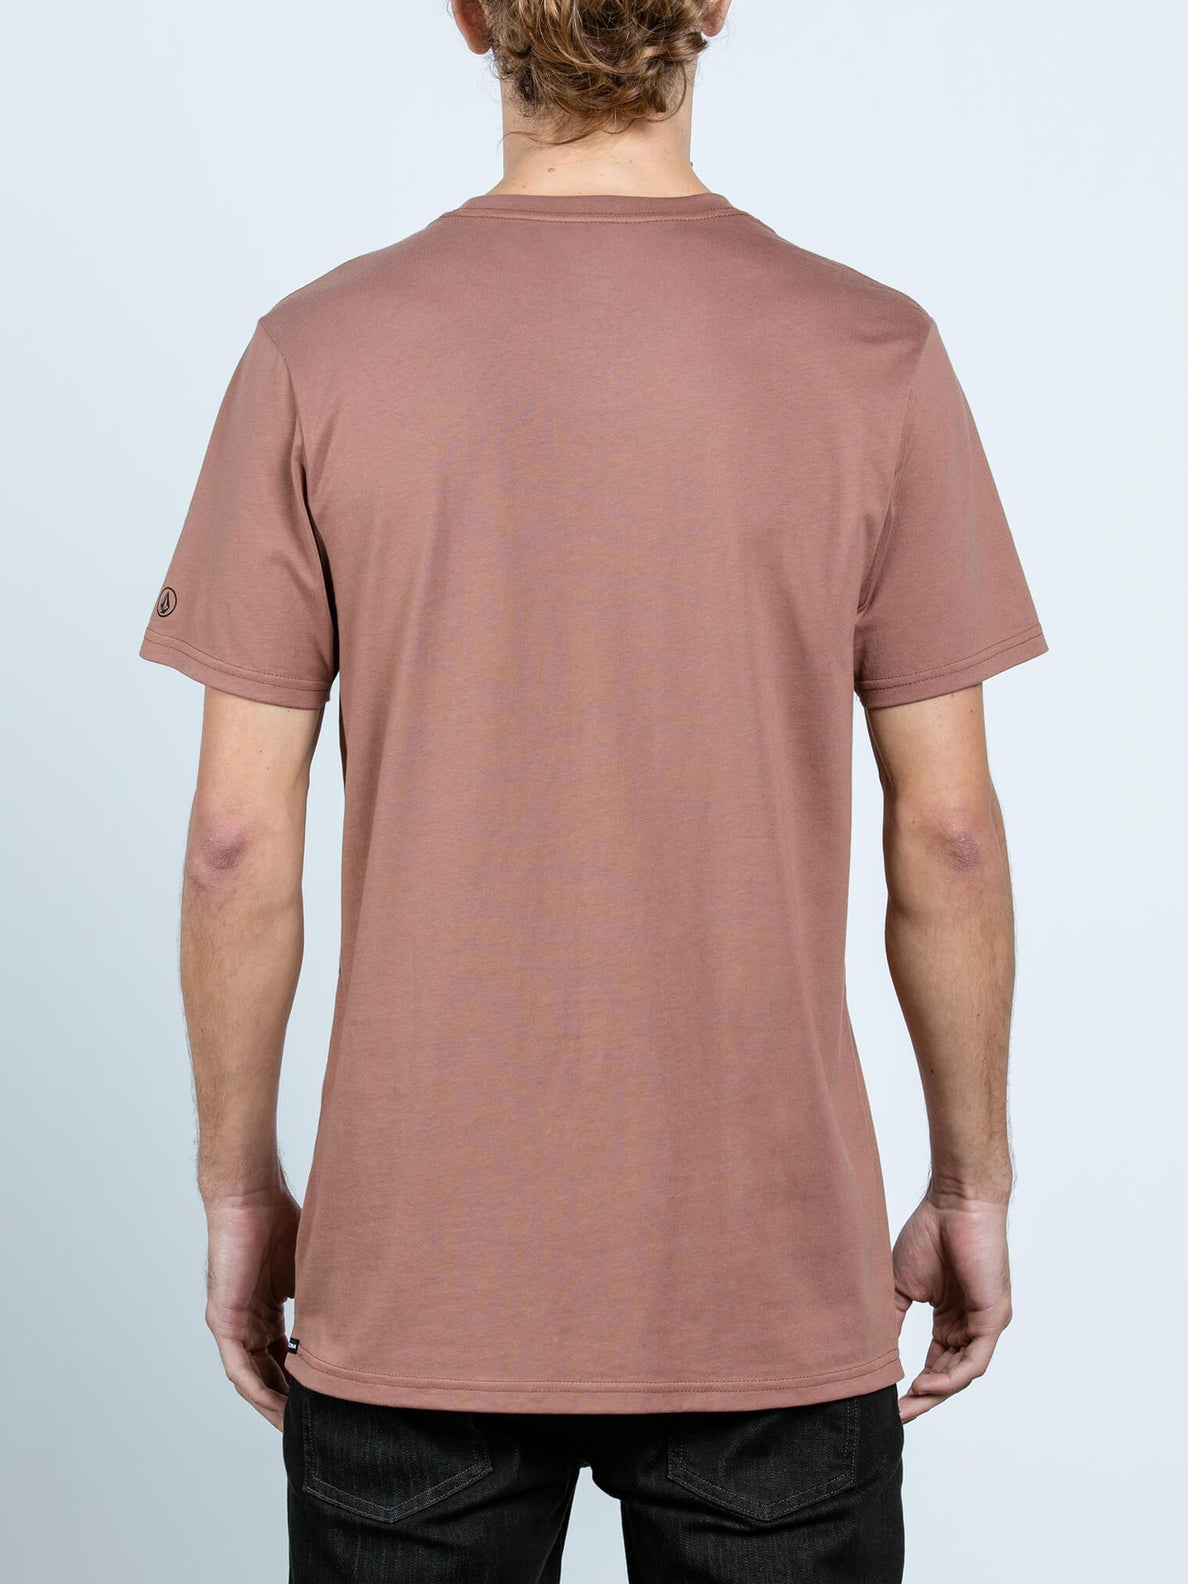 Solid Ss Tee In Dusty Brown, Back View